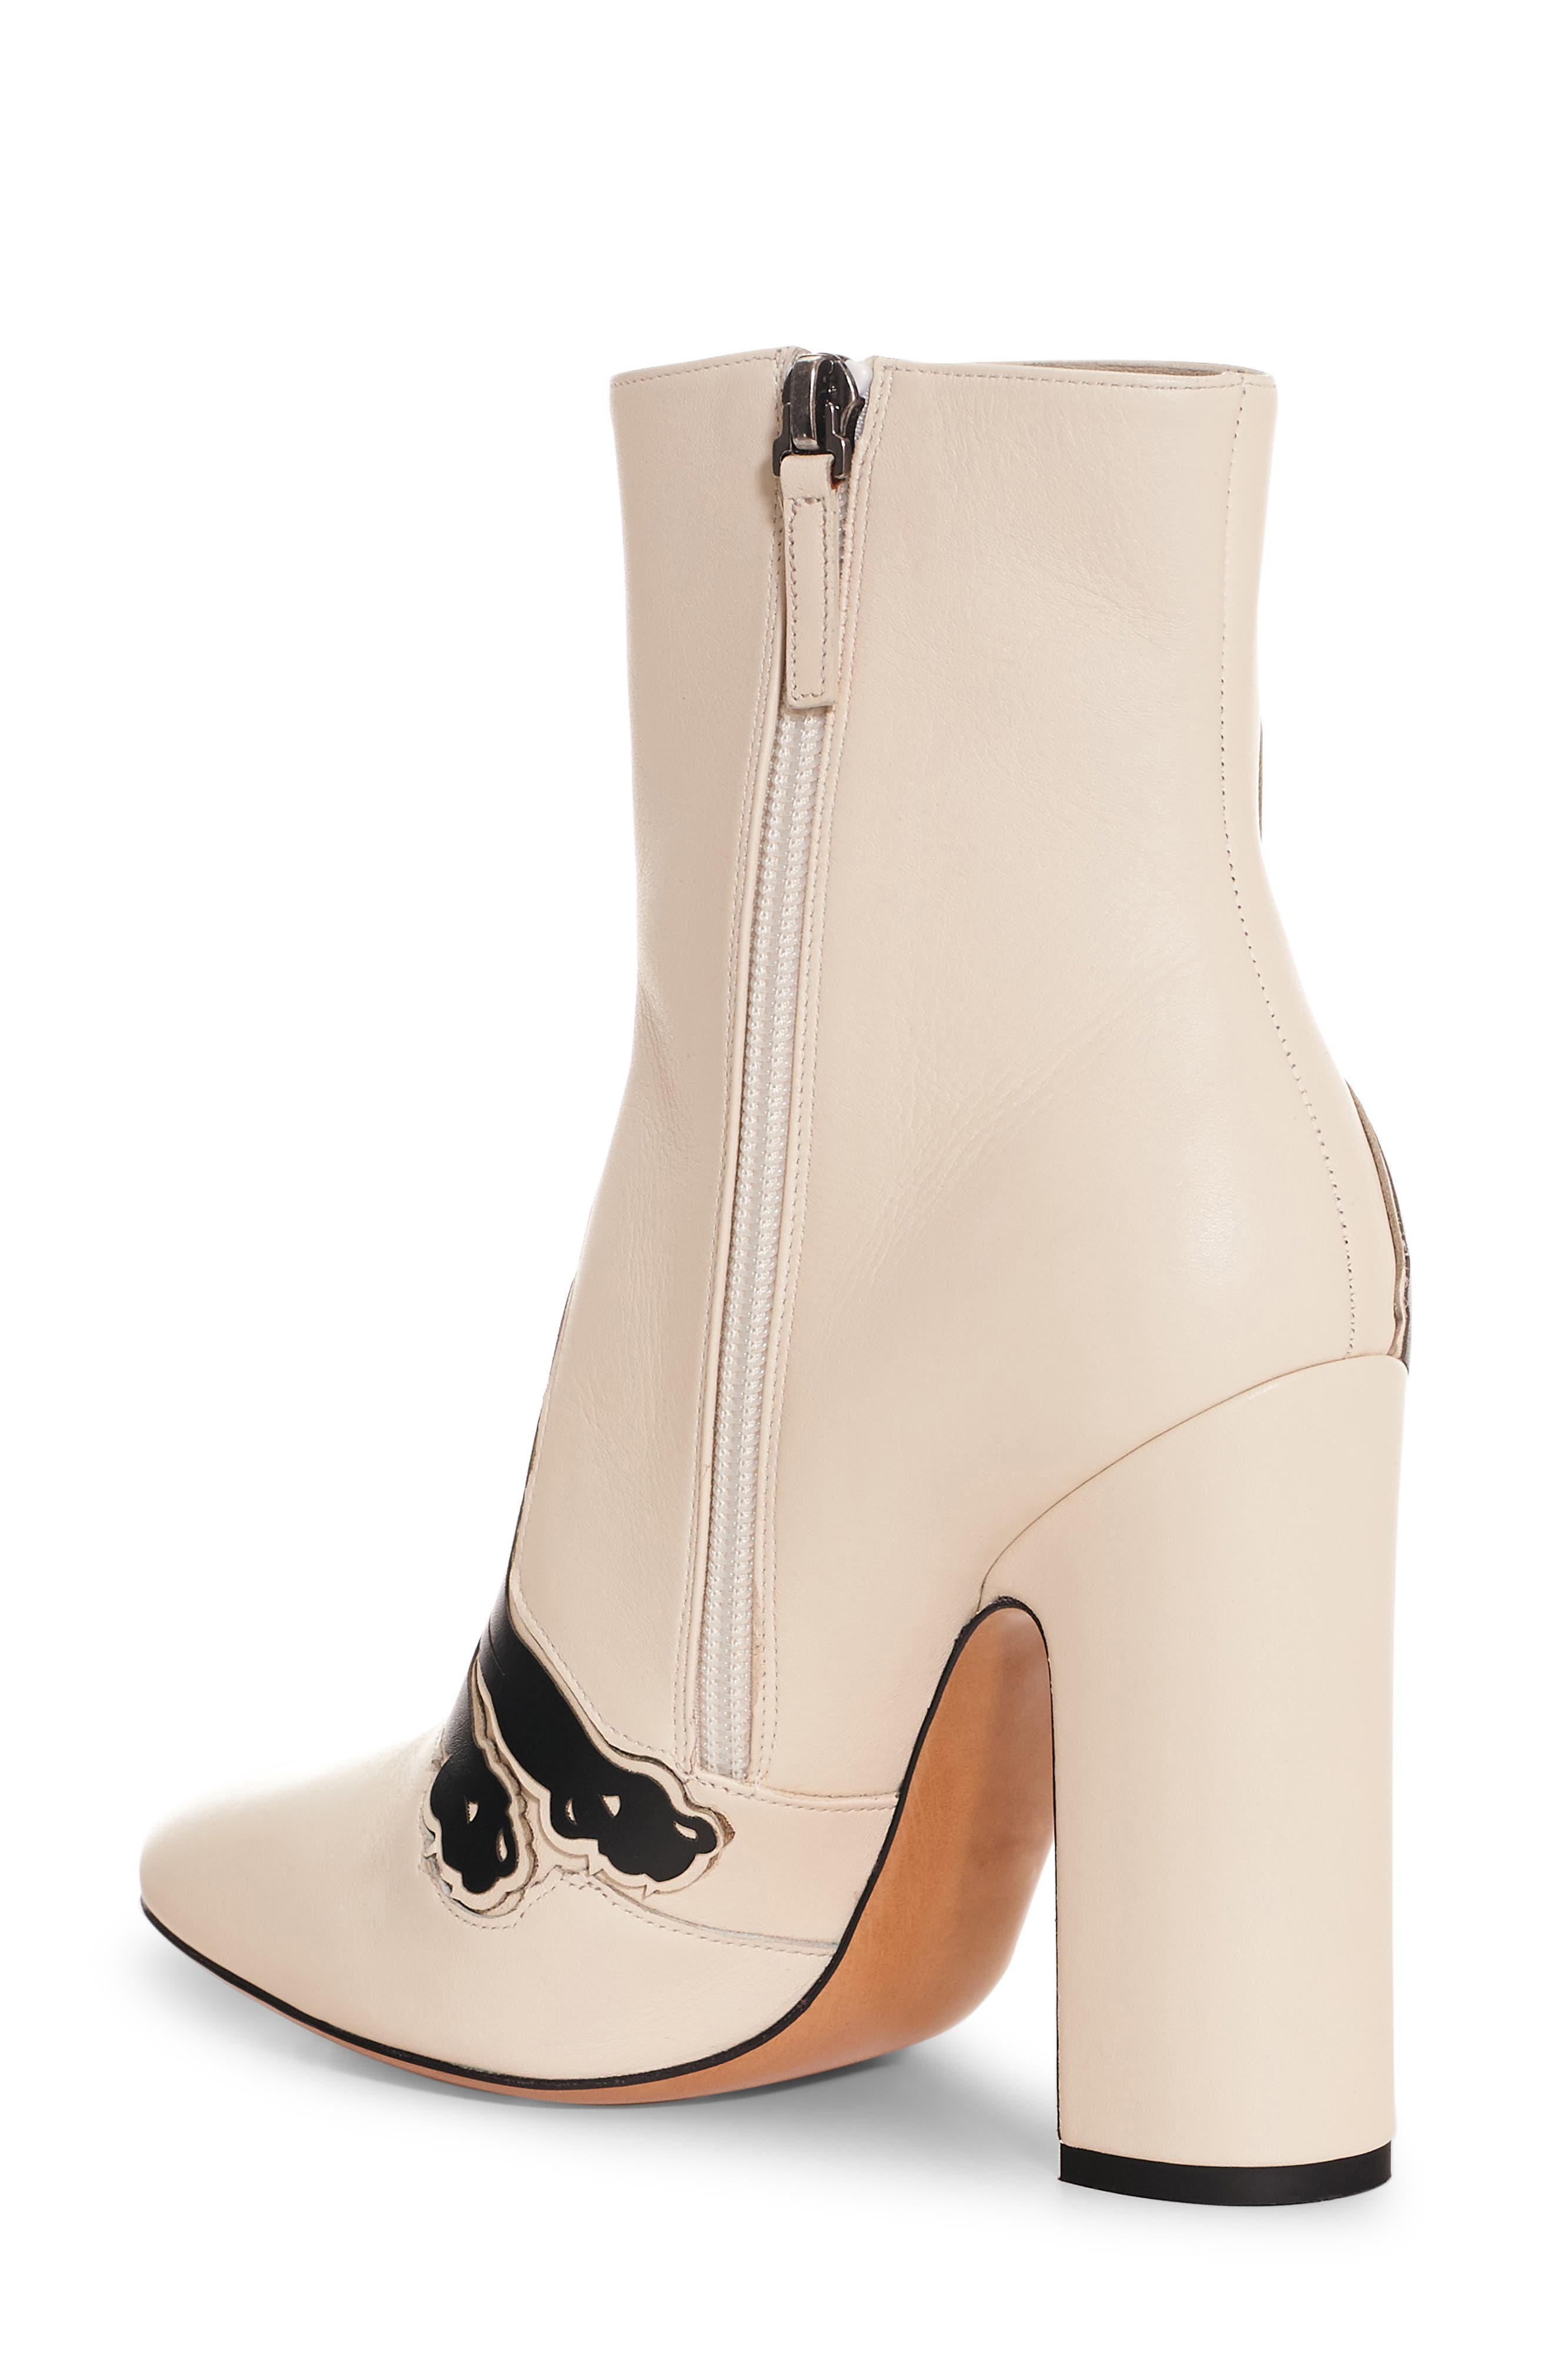 Panther Boot,                             Alternate thumbnail 2, color,                             Ivory Leather